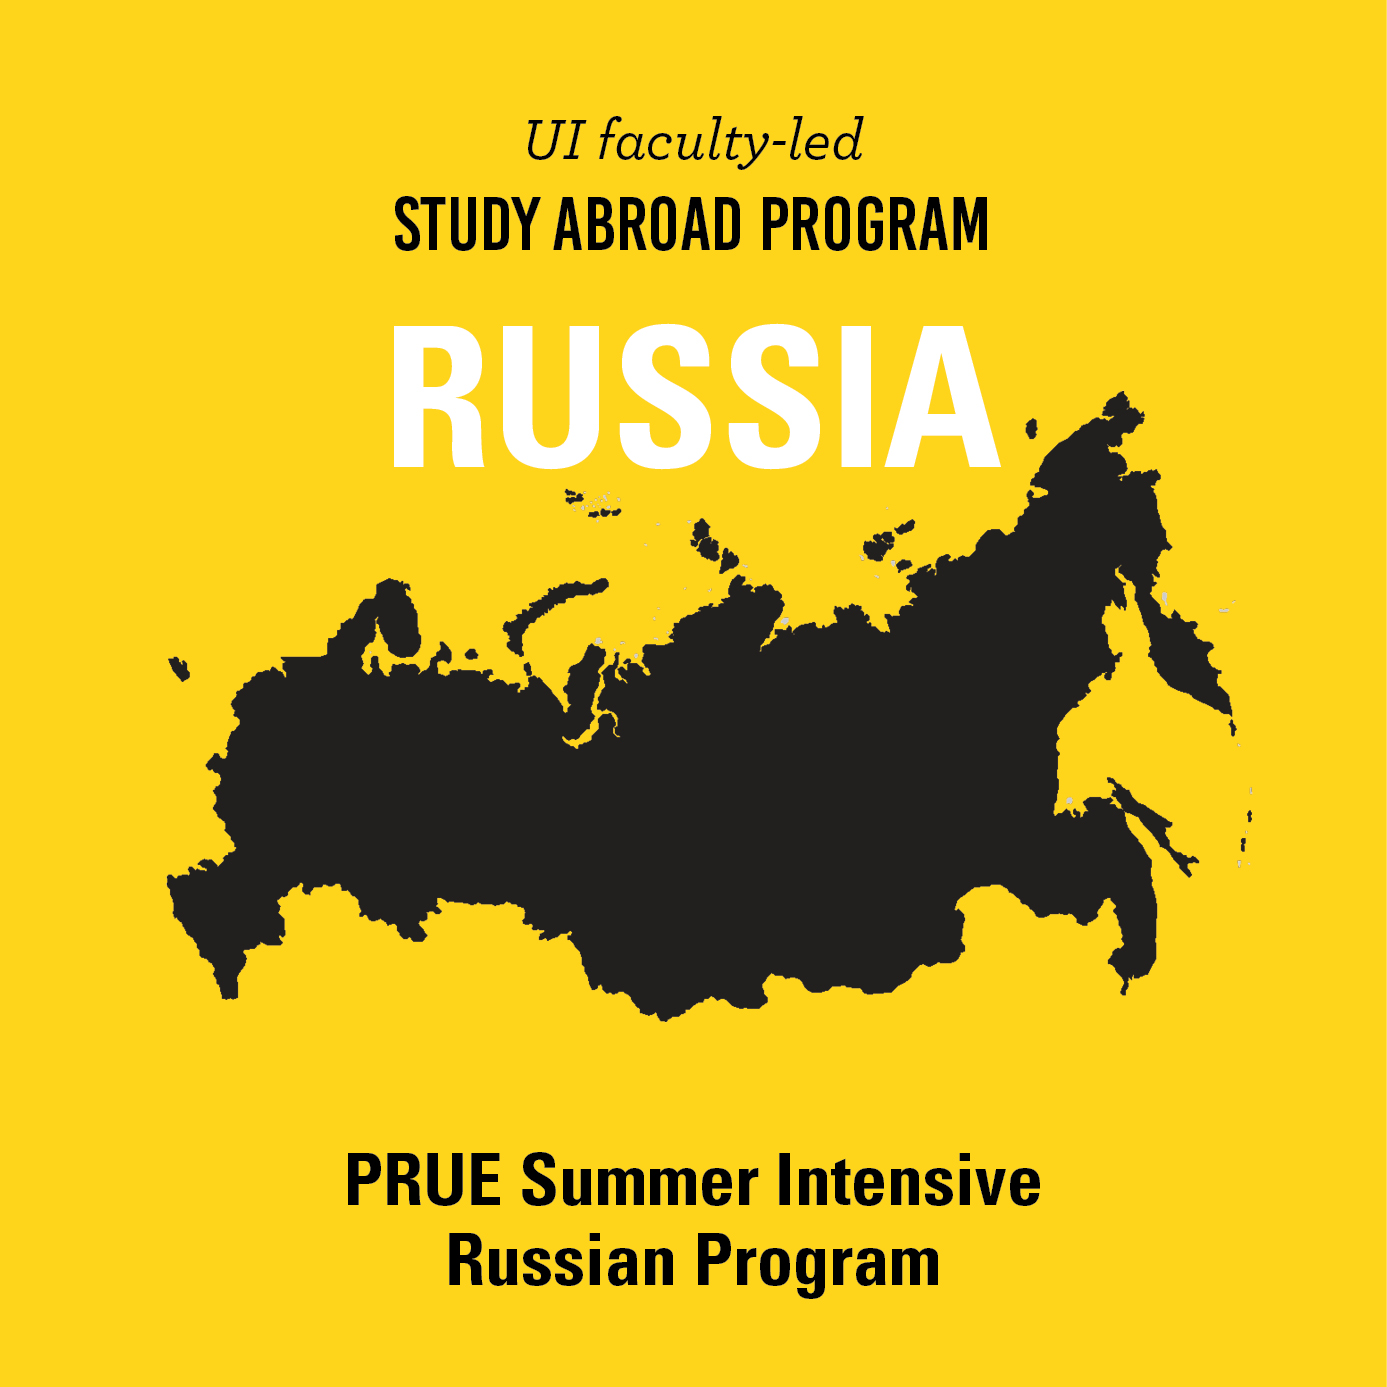 Study Abroad Information Session Oct 4, Dec 6, and Jan 31 PRUE Summer Intensive Russian Program